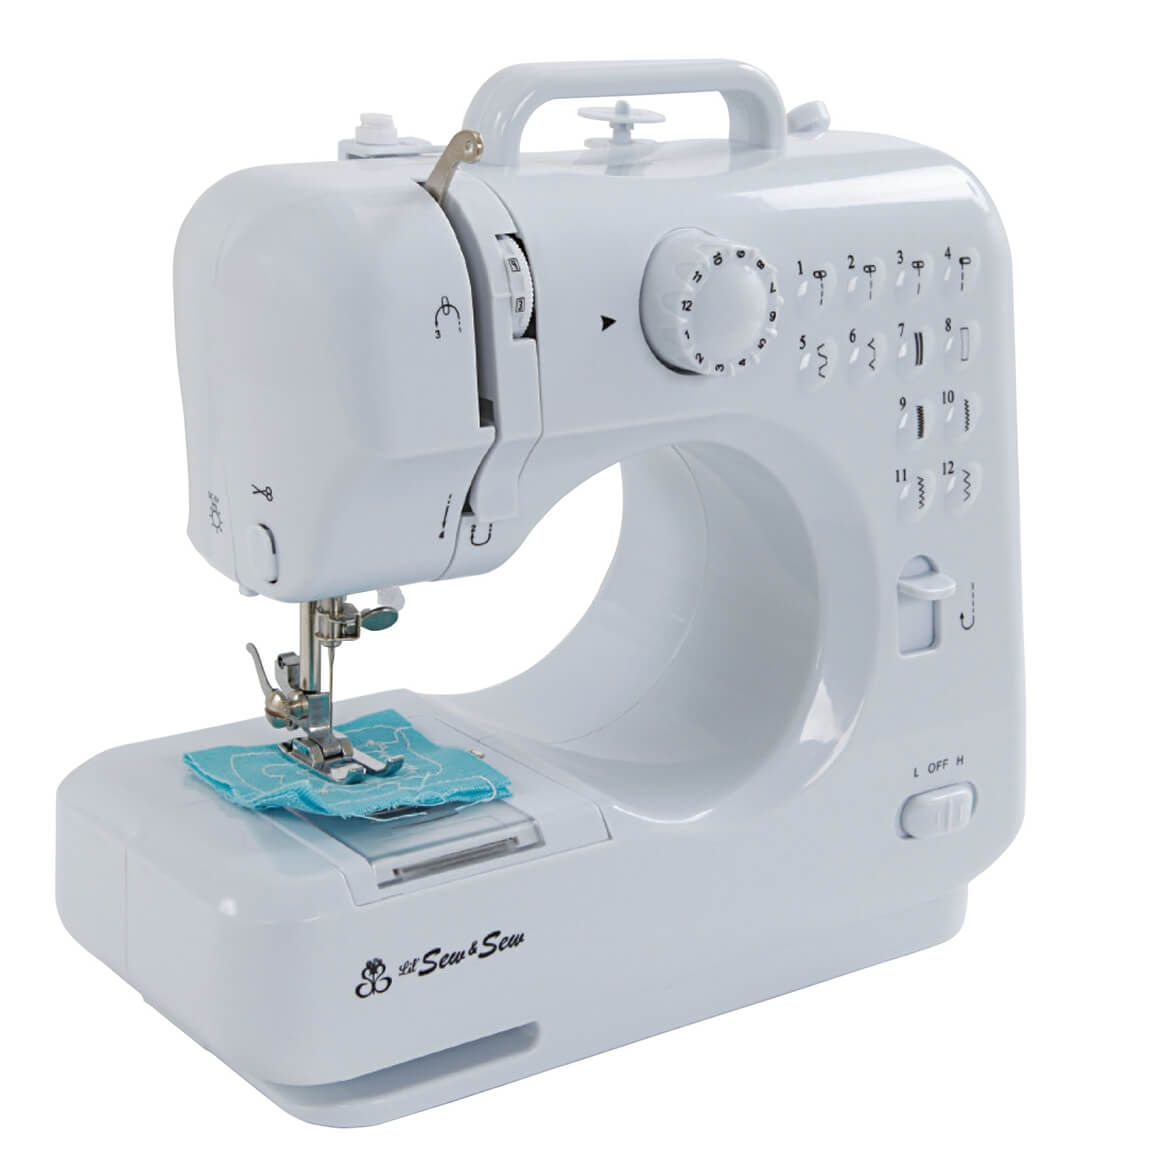 12 Stitch Table Top Sewing Machine-369794